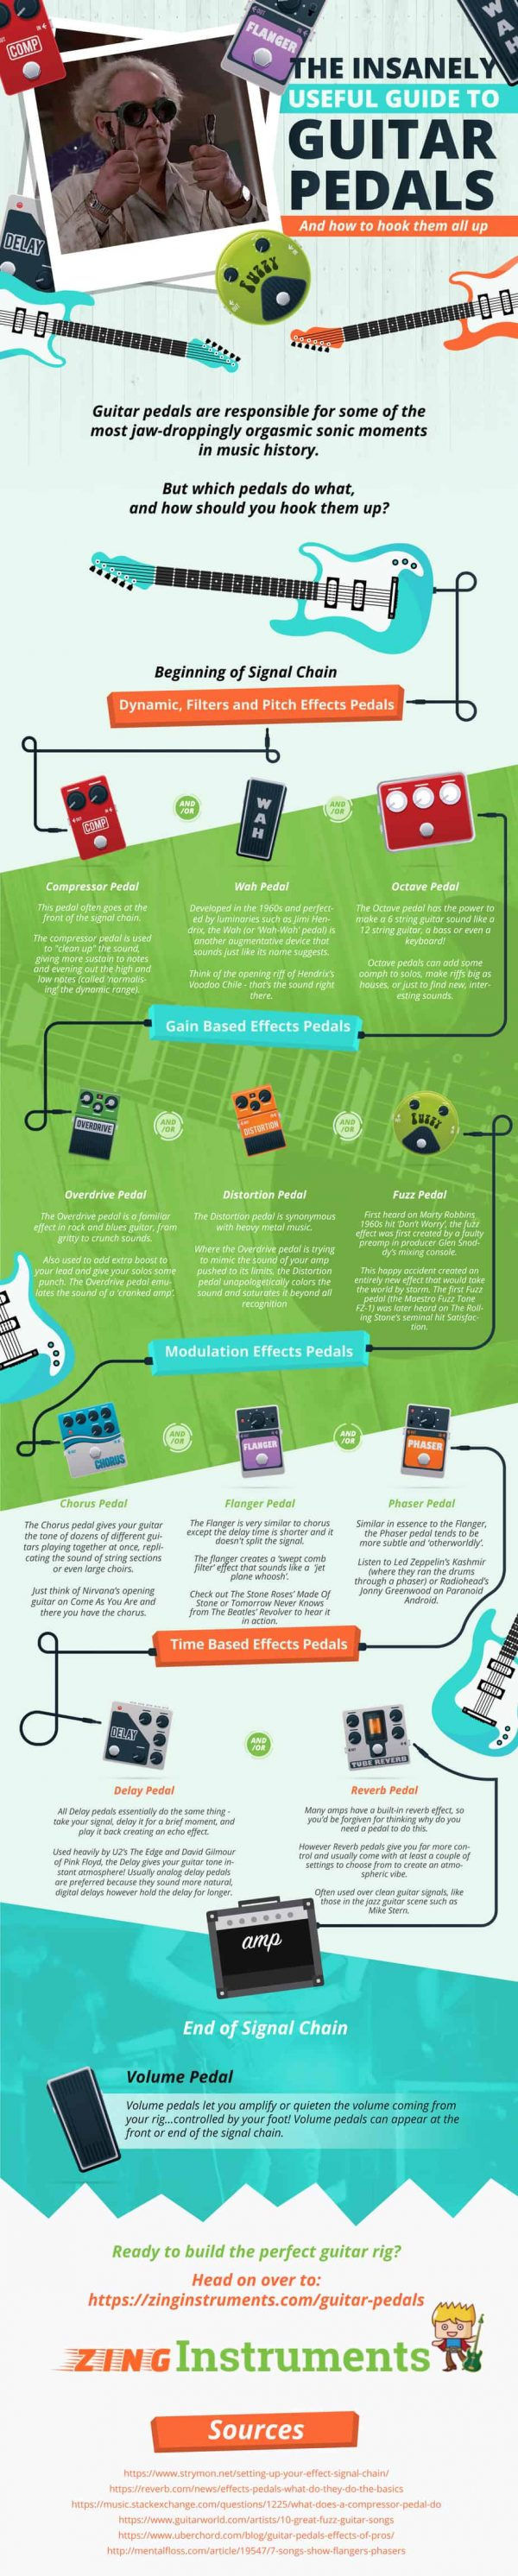 guitar pedal mastery a beginner 39 s guide infographic techno faq. Black Bedroom Furniture Sets. Home Design Ideas